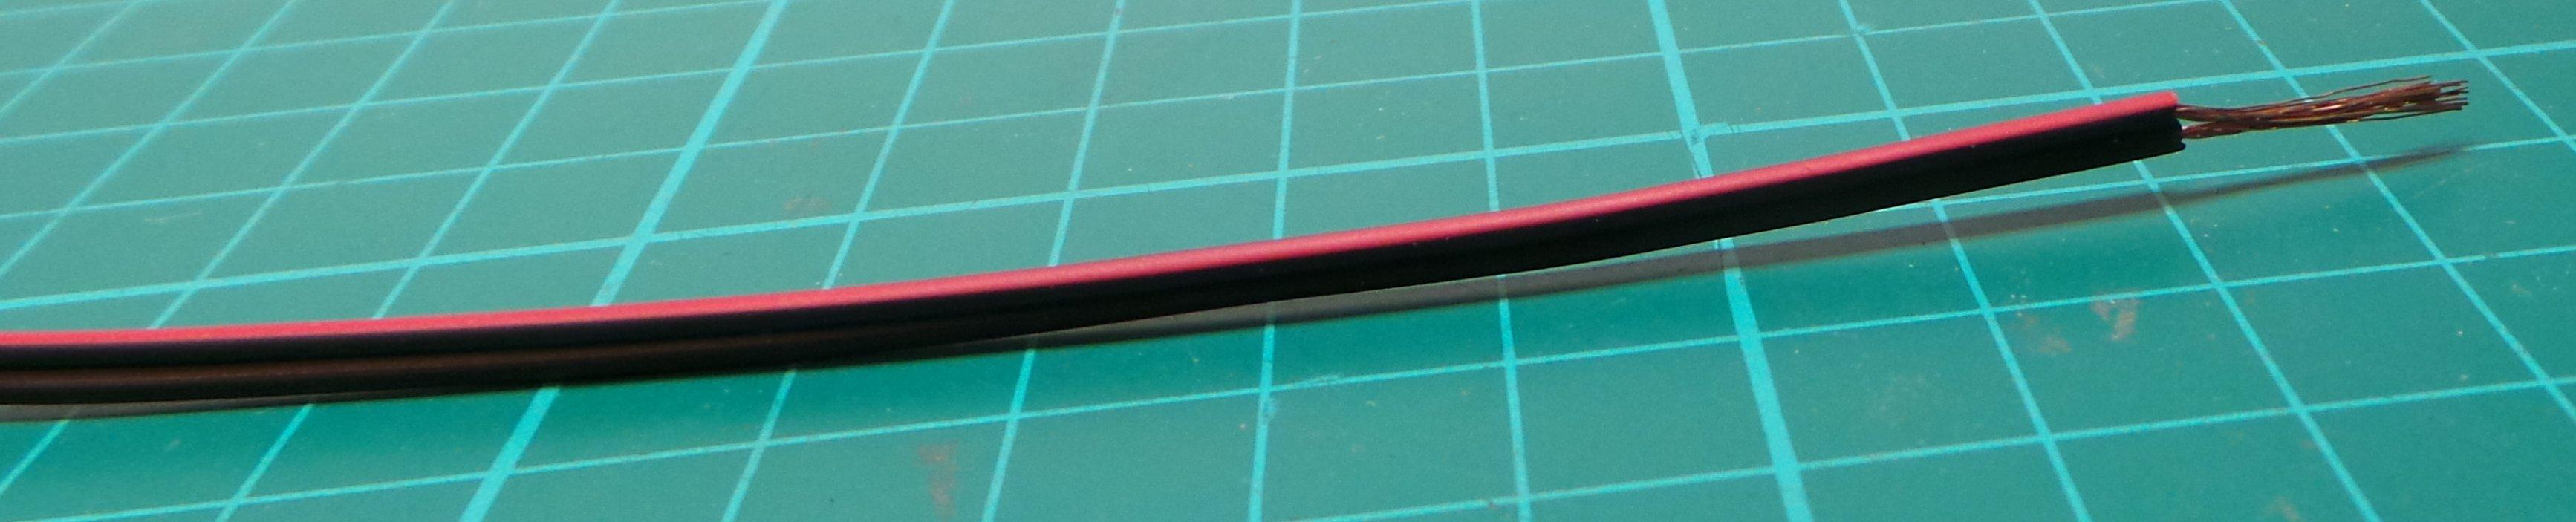 Wire, Paired, 24AWG, 0.22mm2, Black/Red - DSMCZ